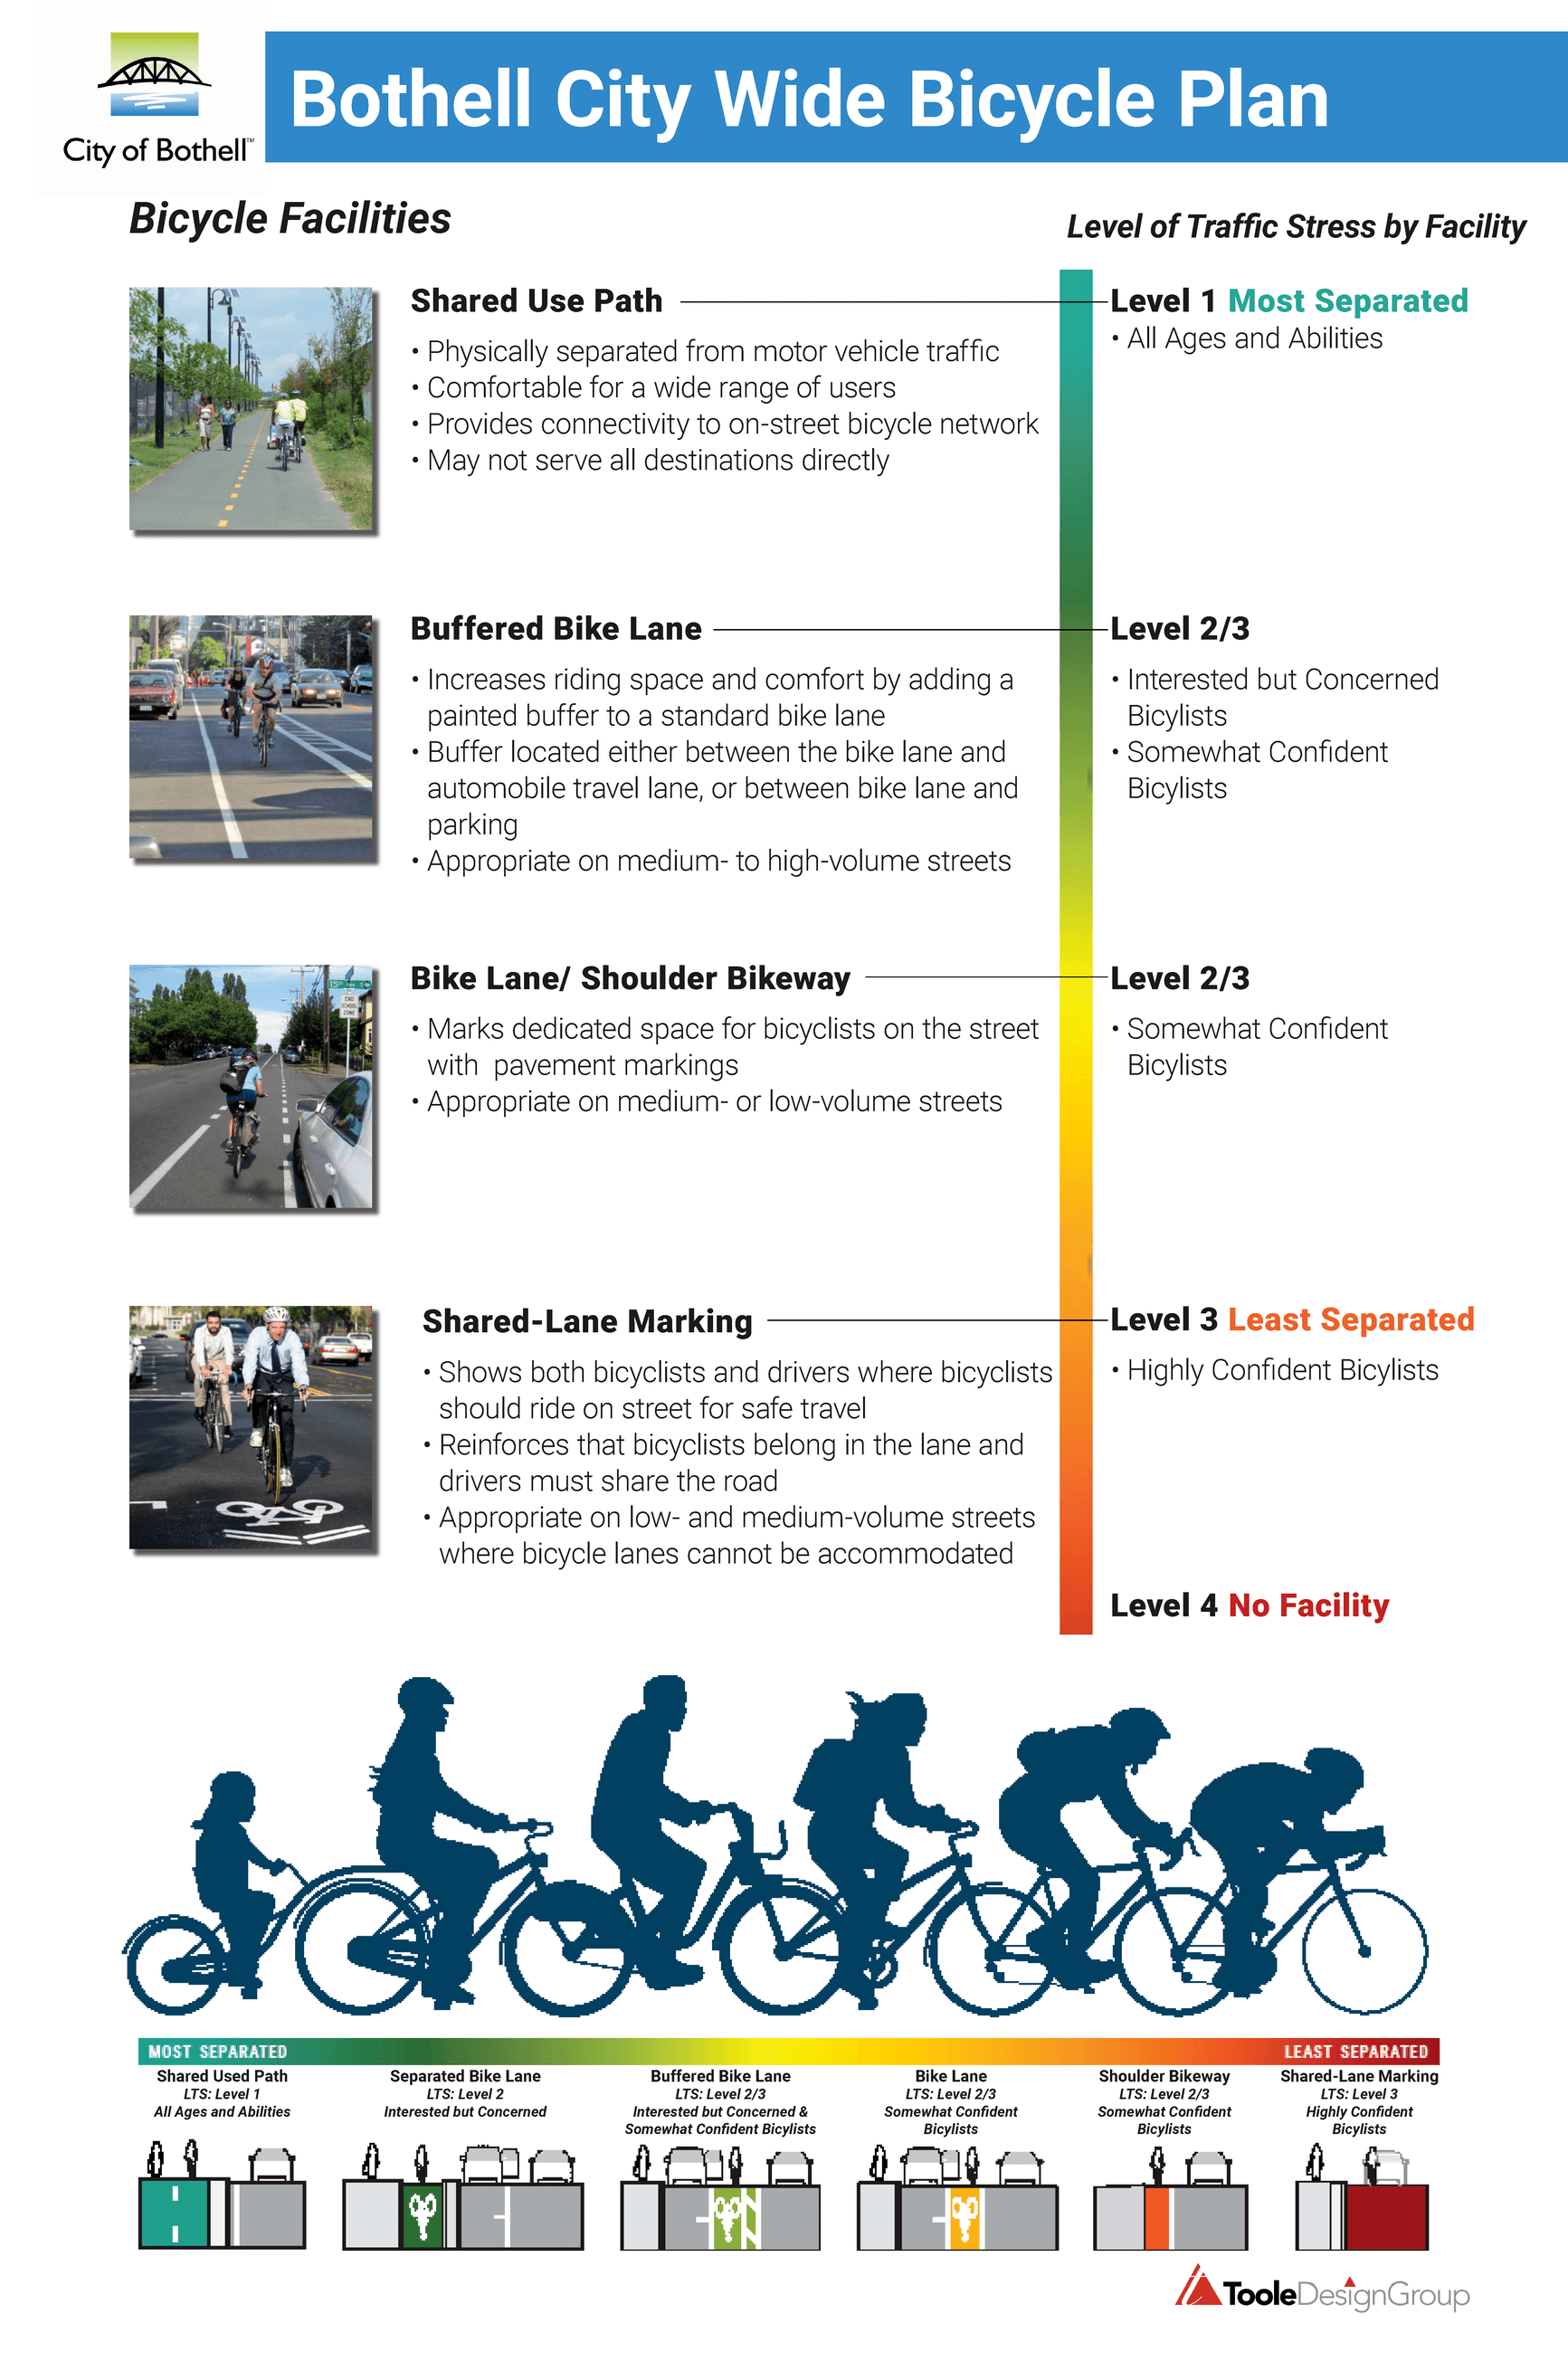 Bicycle Facilities Detail showing various path options